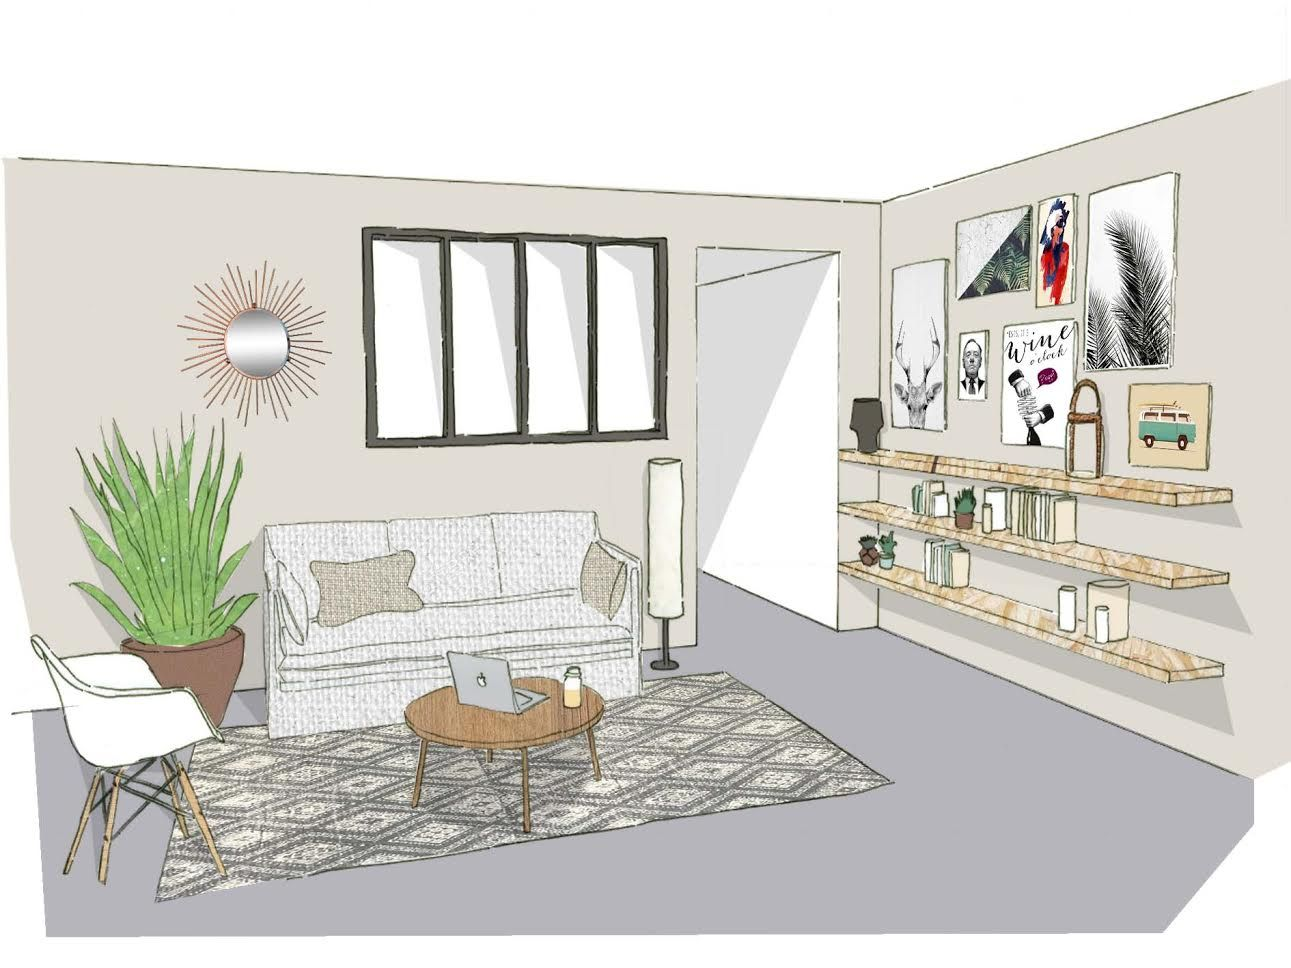 Projet salon naturel architecte projet sketch dessin for Amenagement piece maison